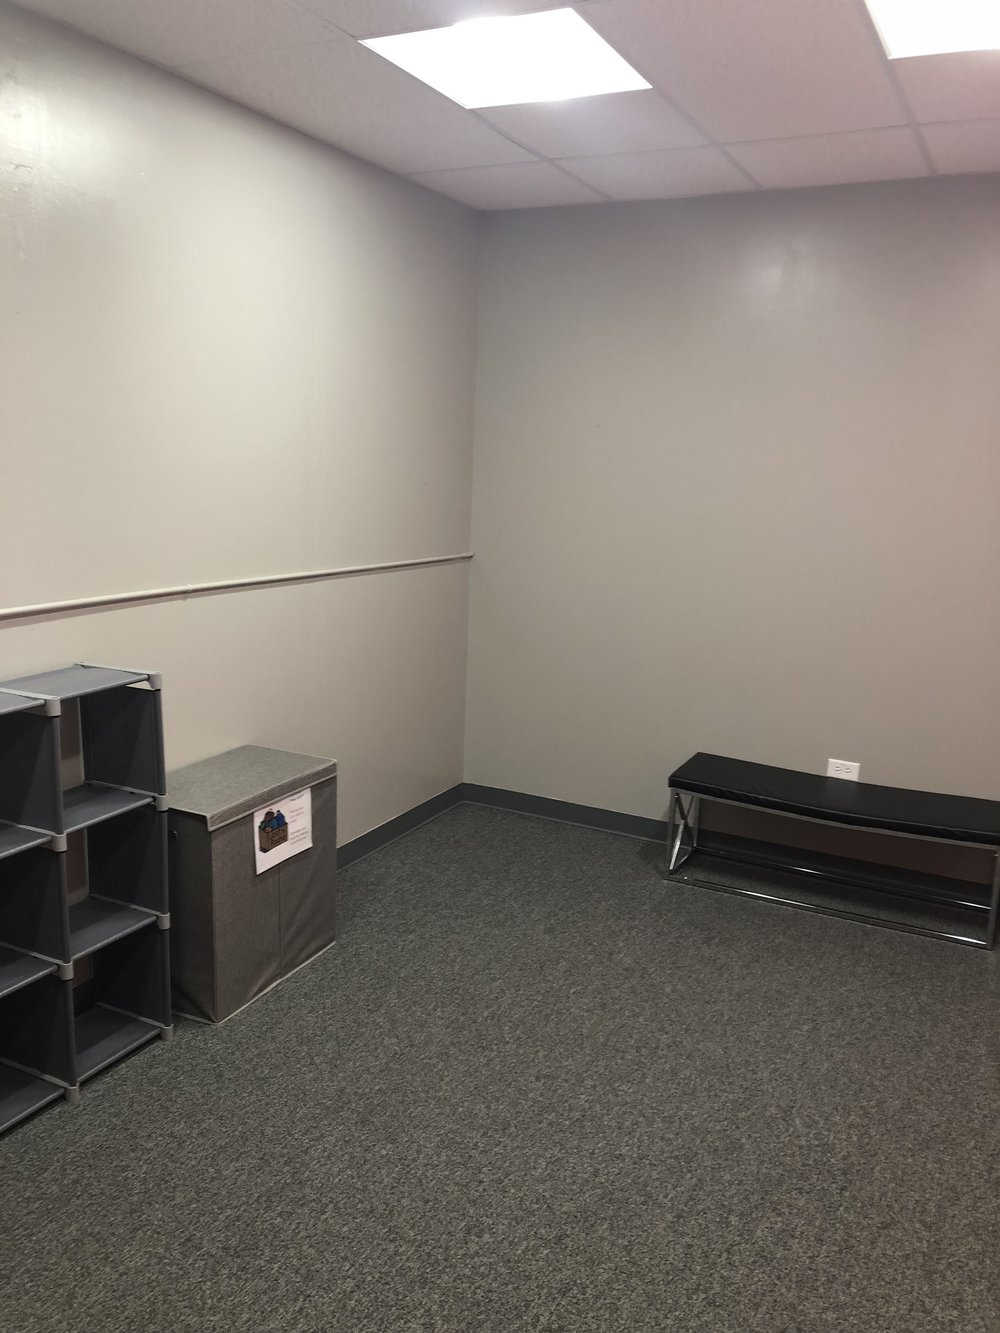 second changing room